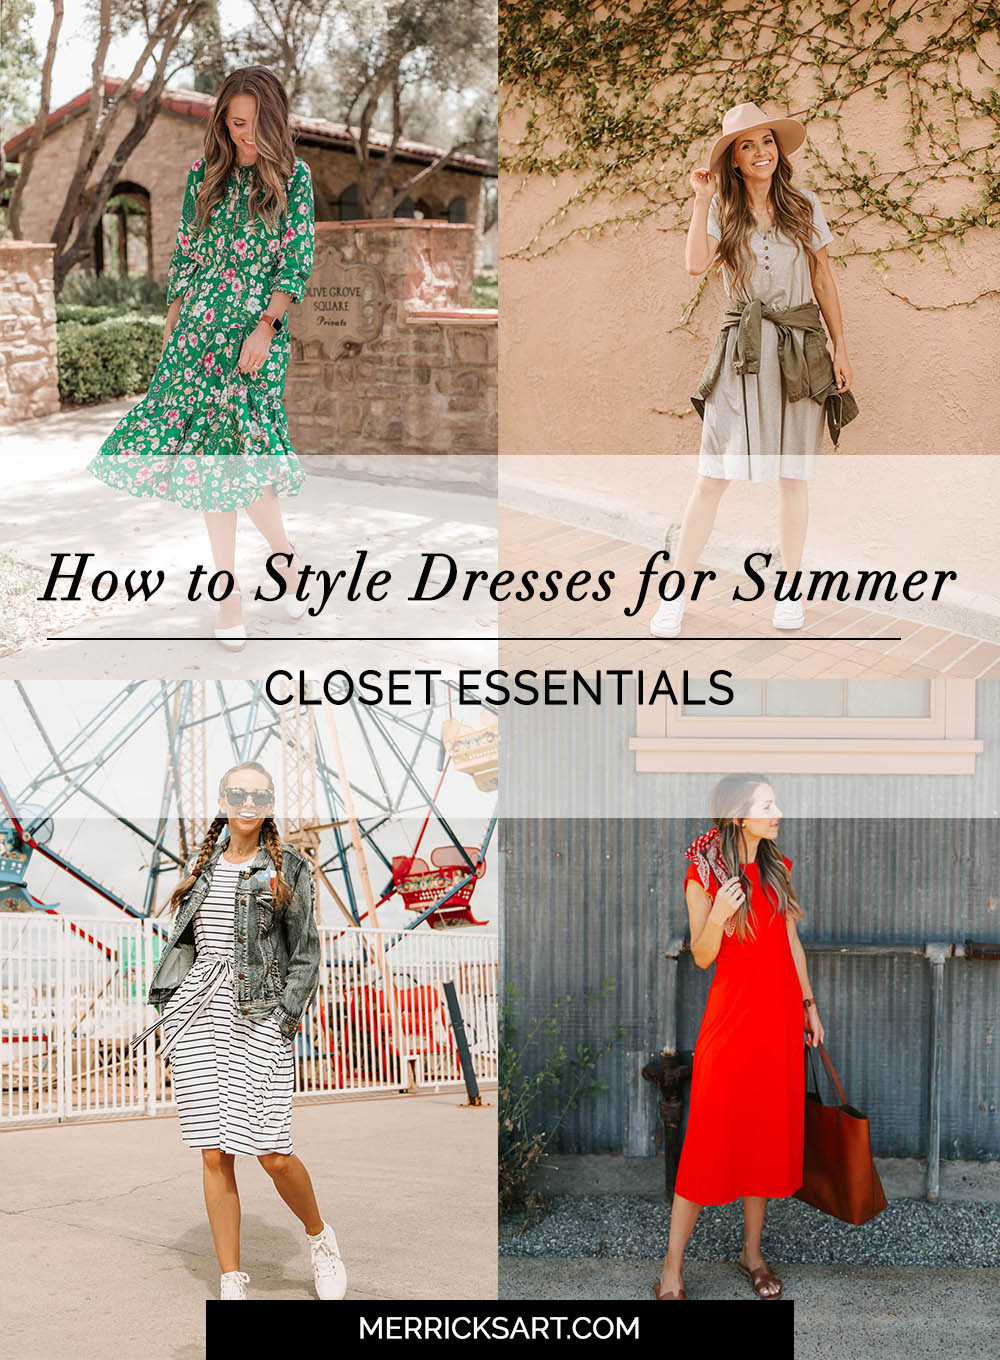 Closet Staples Series: How To Style Dresses For Summer